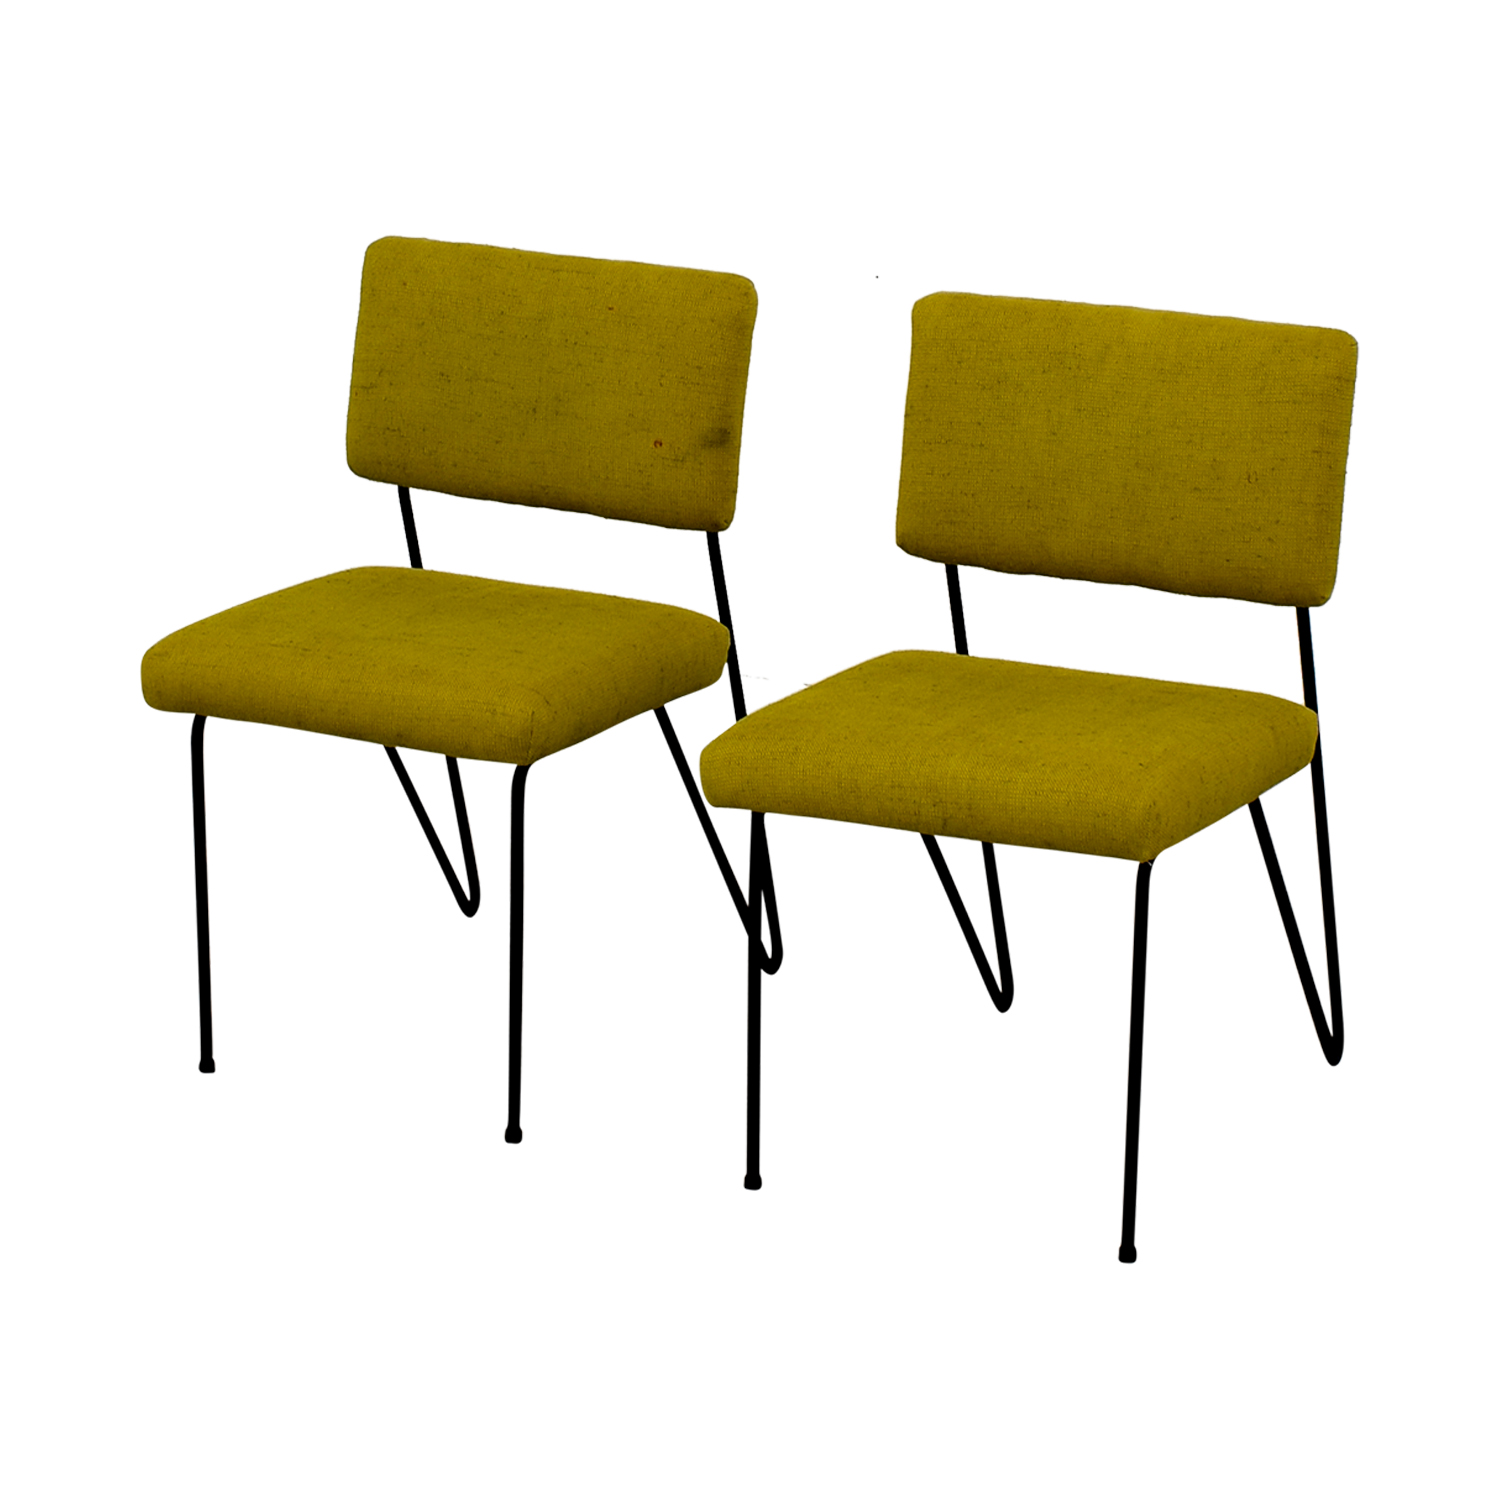 Furniture Masters Furniture Masters Green Fabric and Metal Chairs green